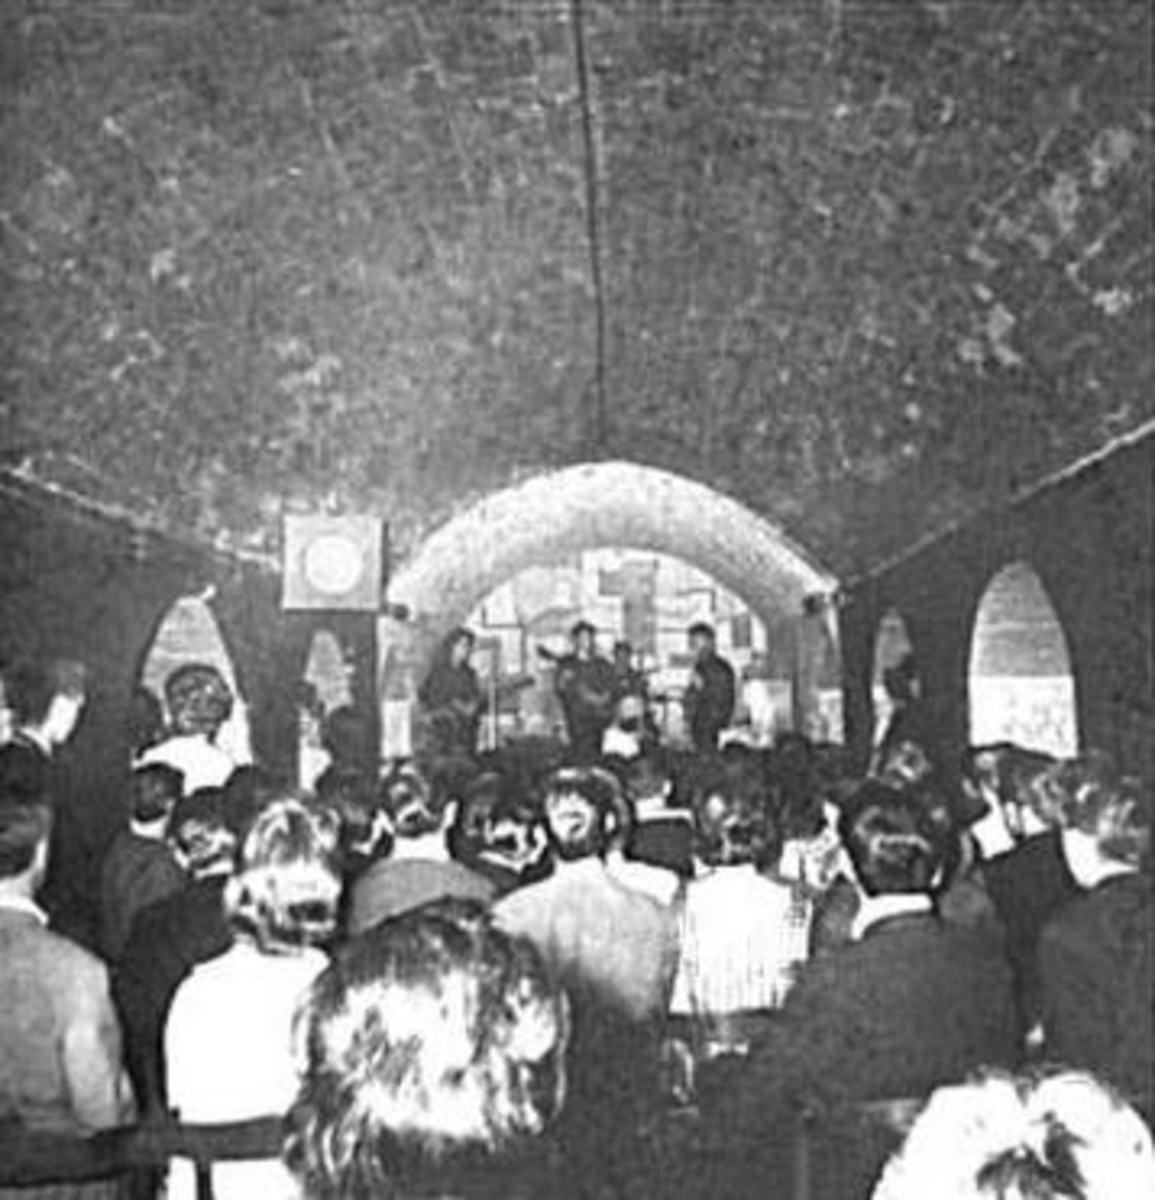 The Beatles in the Cavern 1961